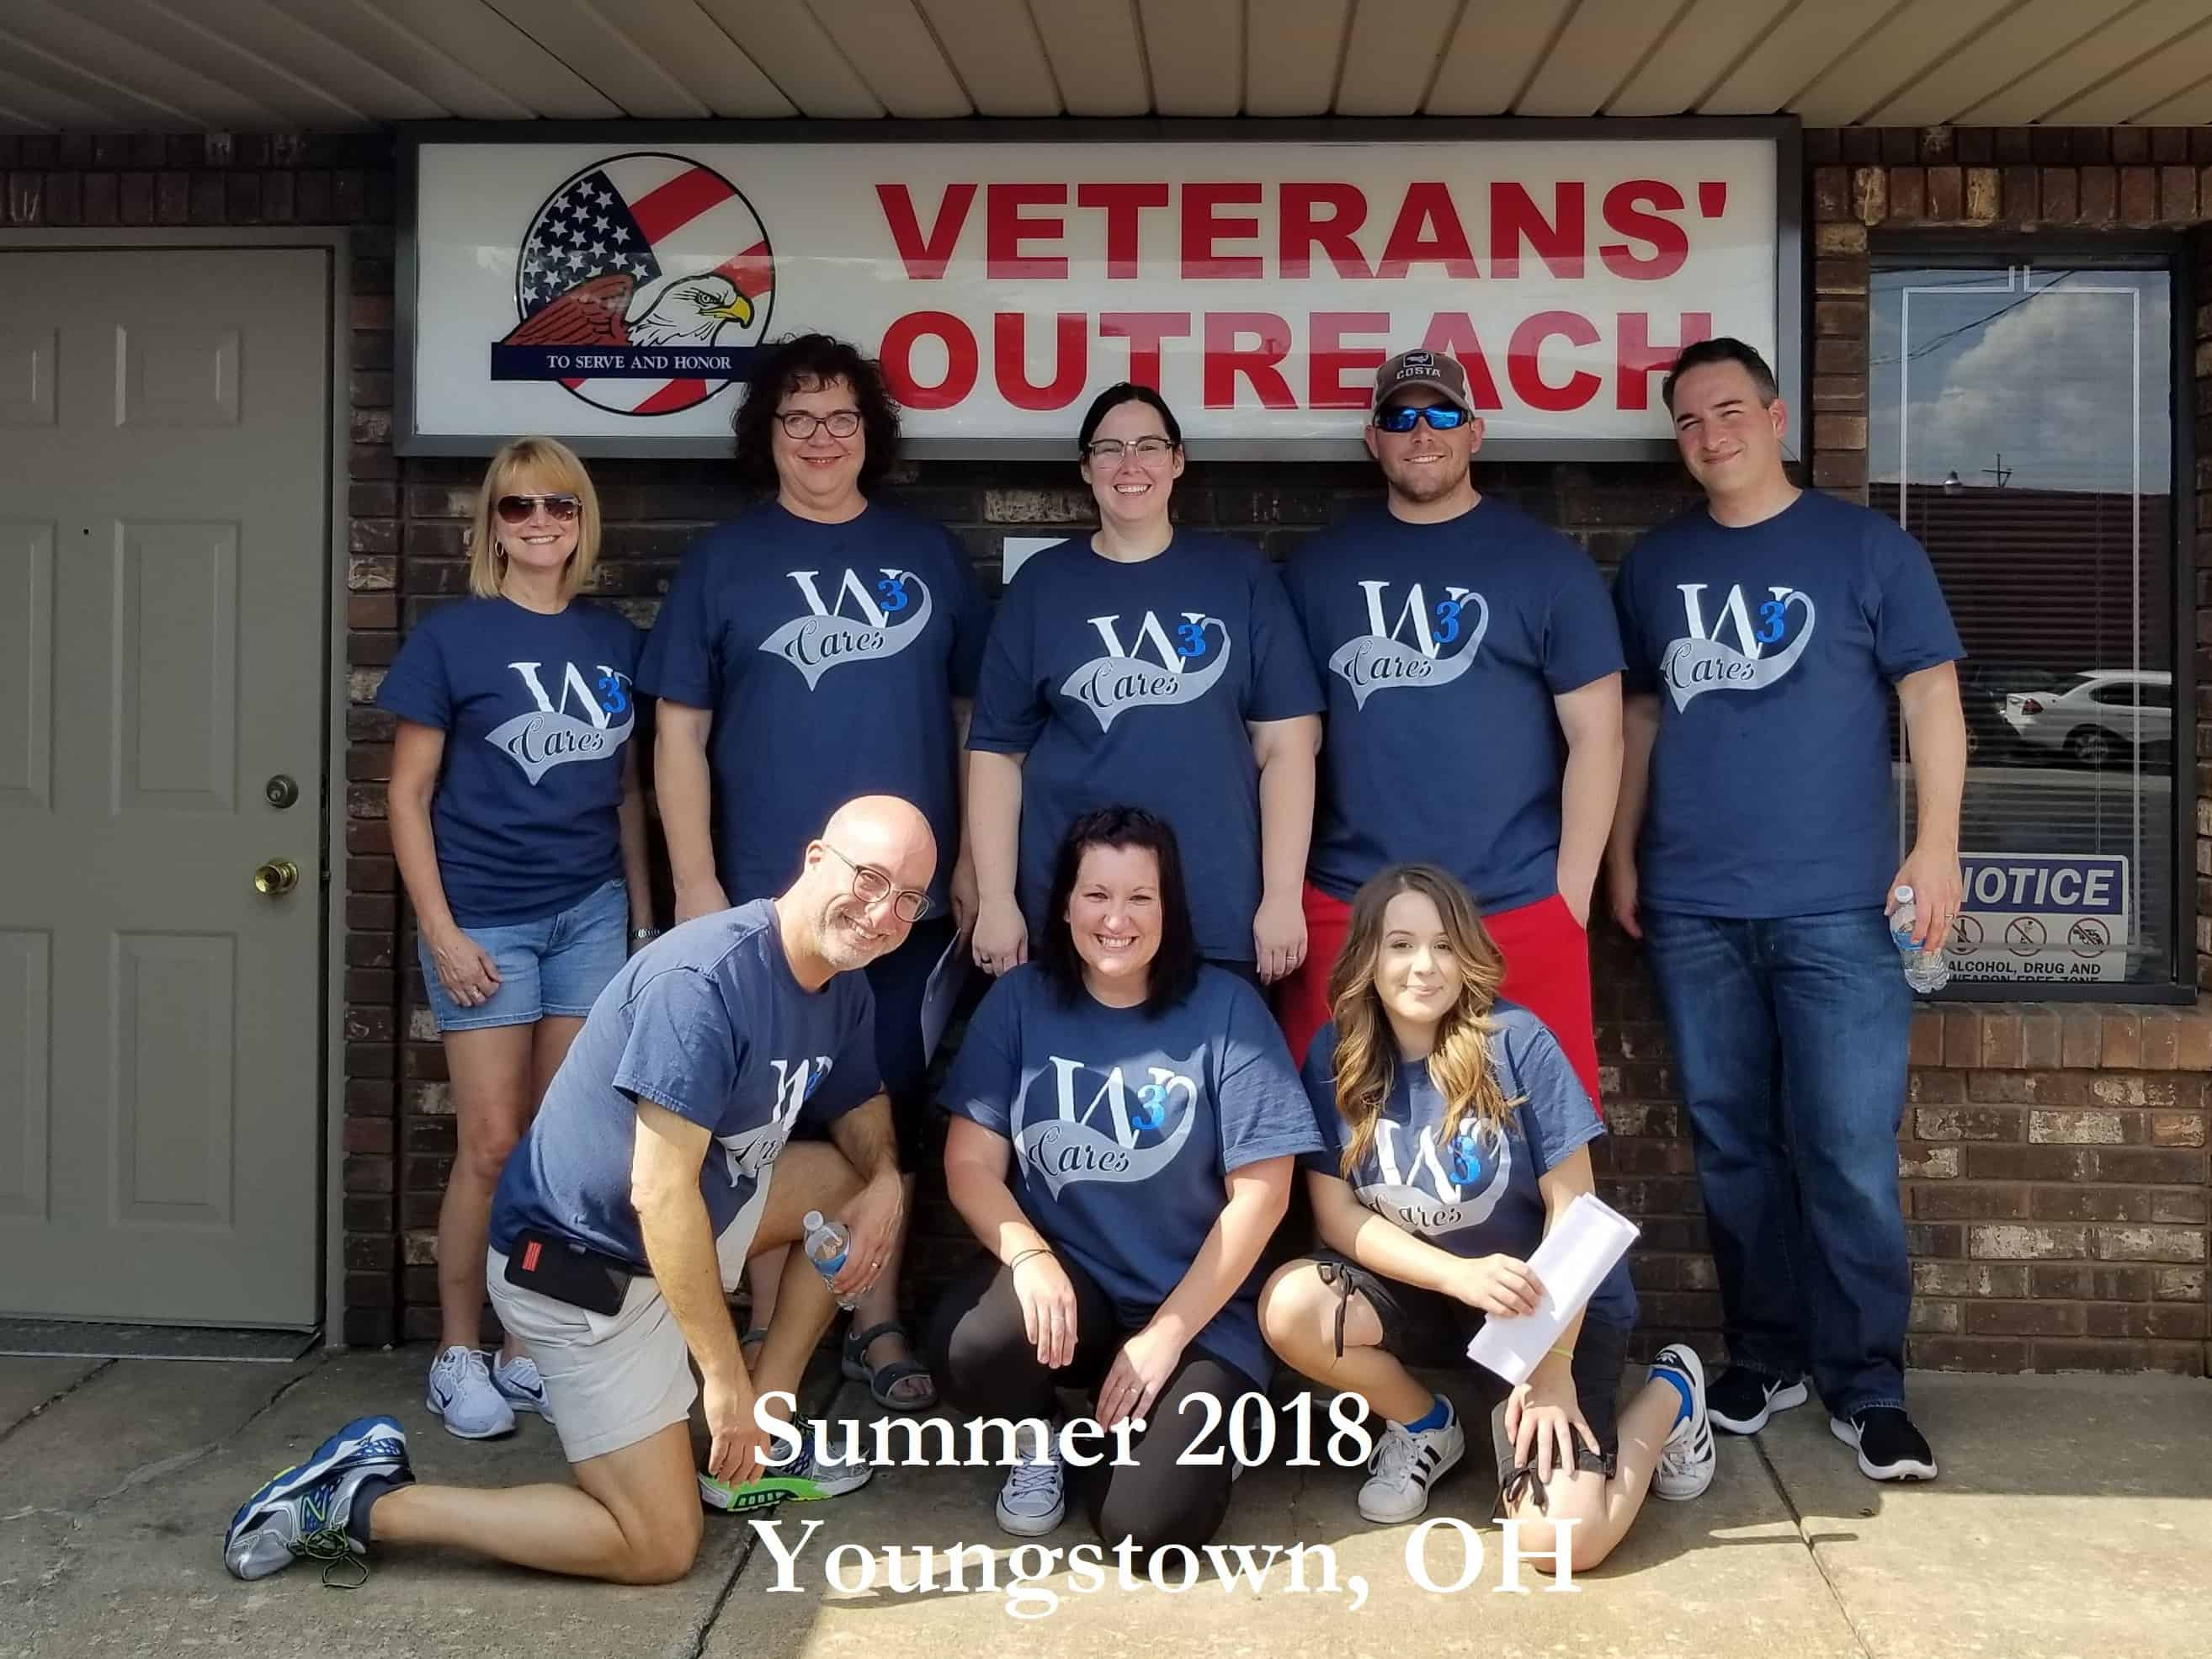 Veternas Outreach